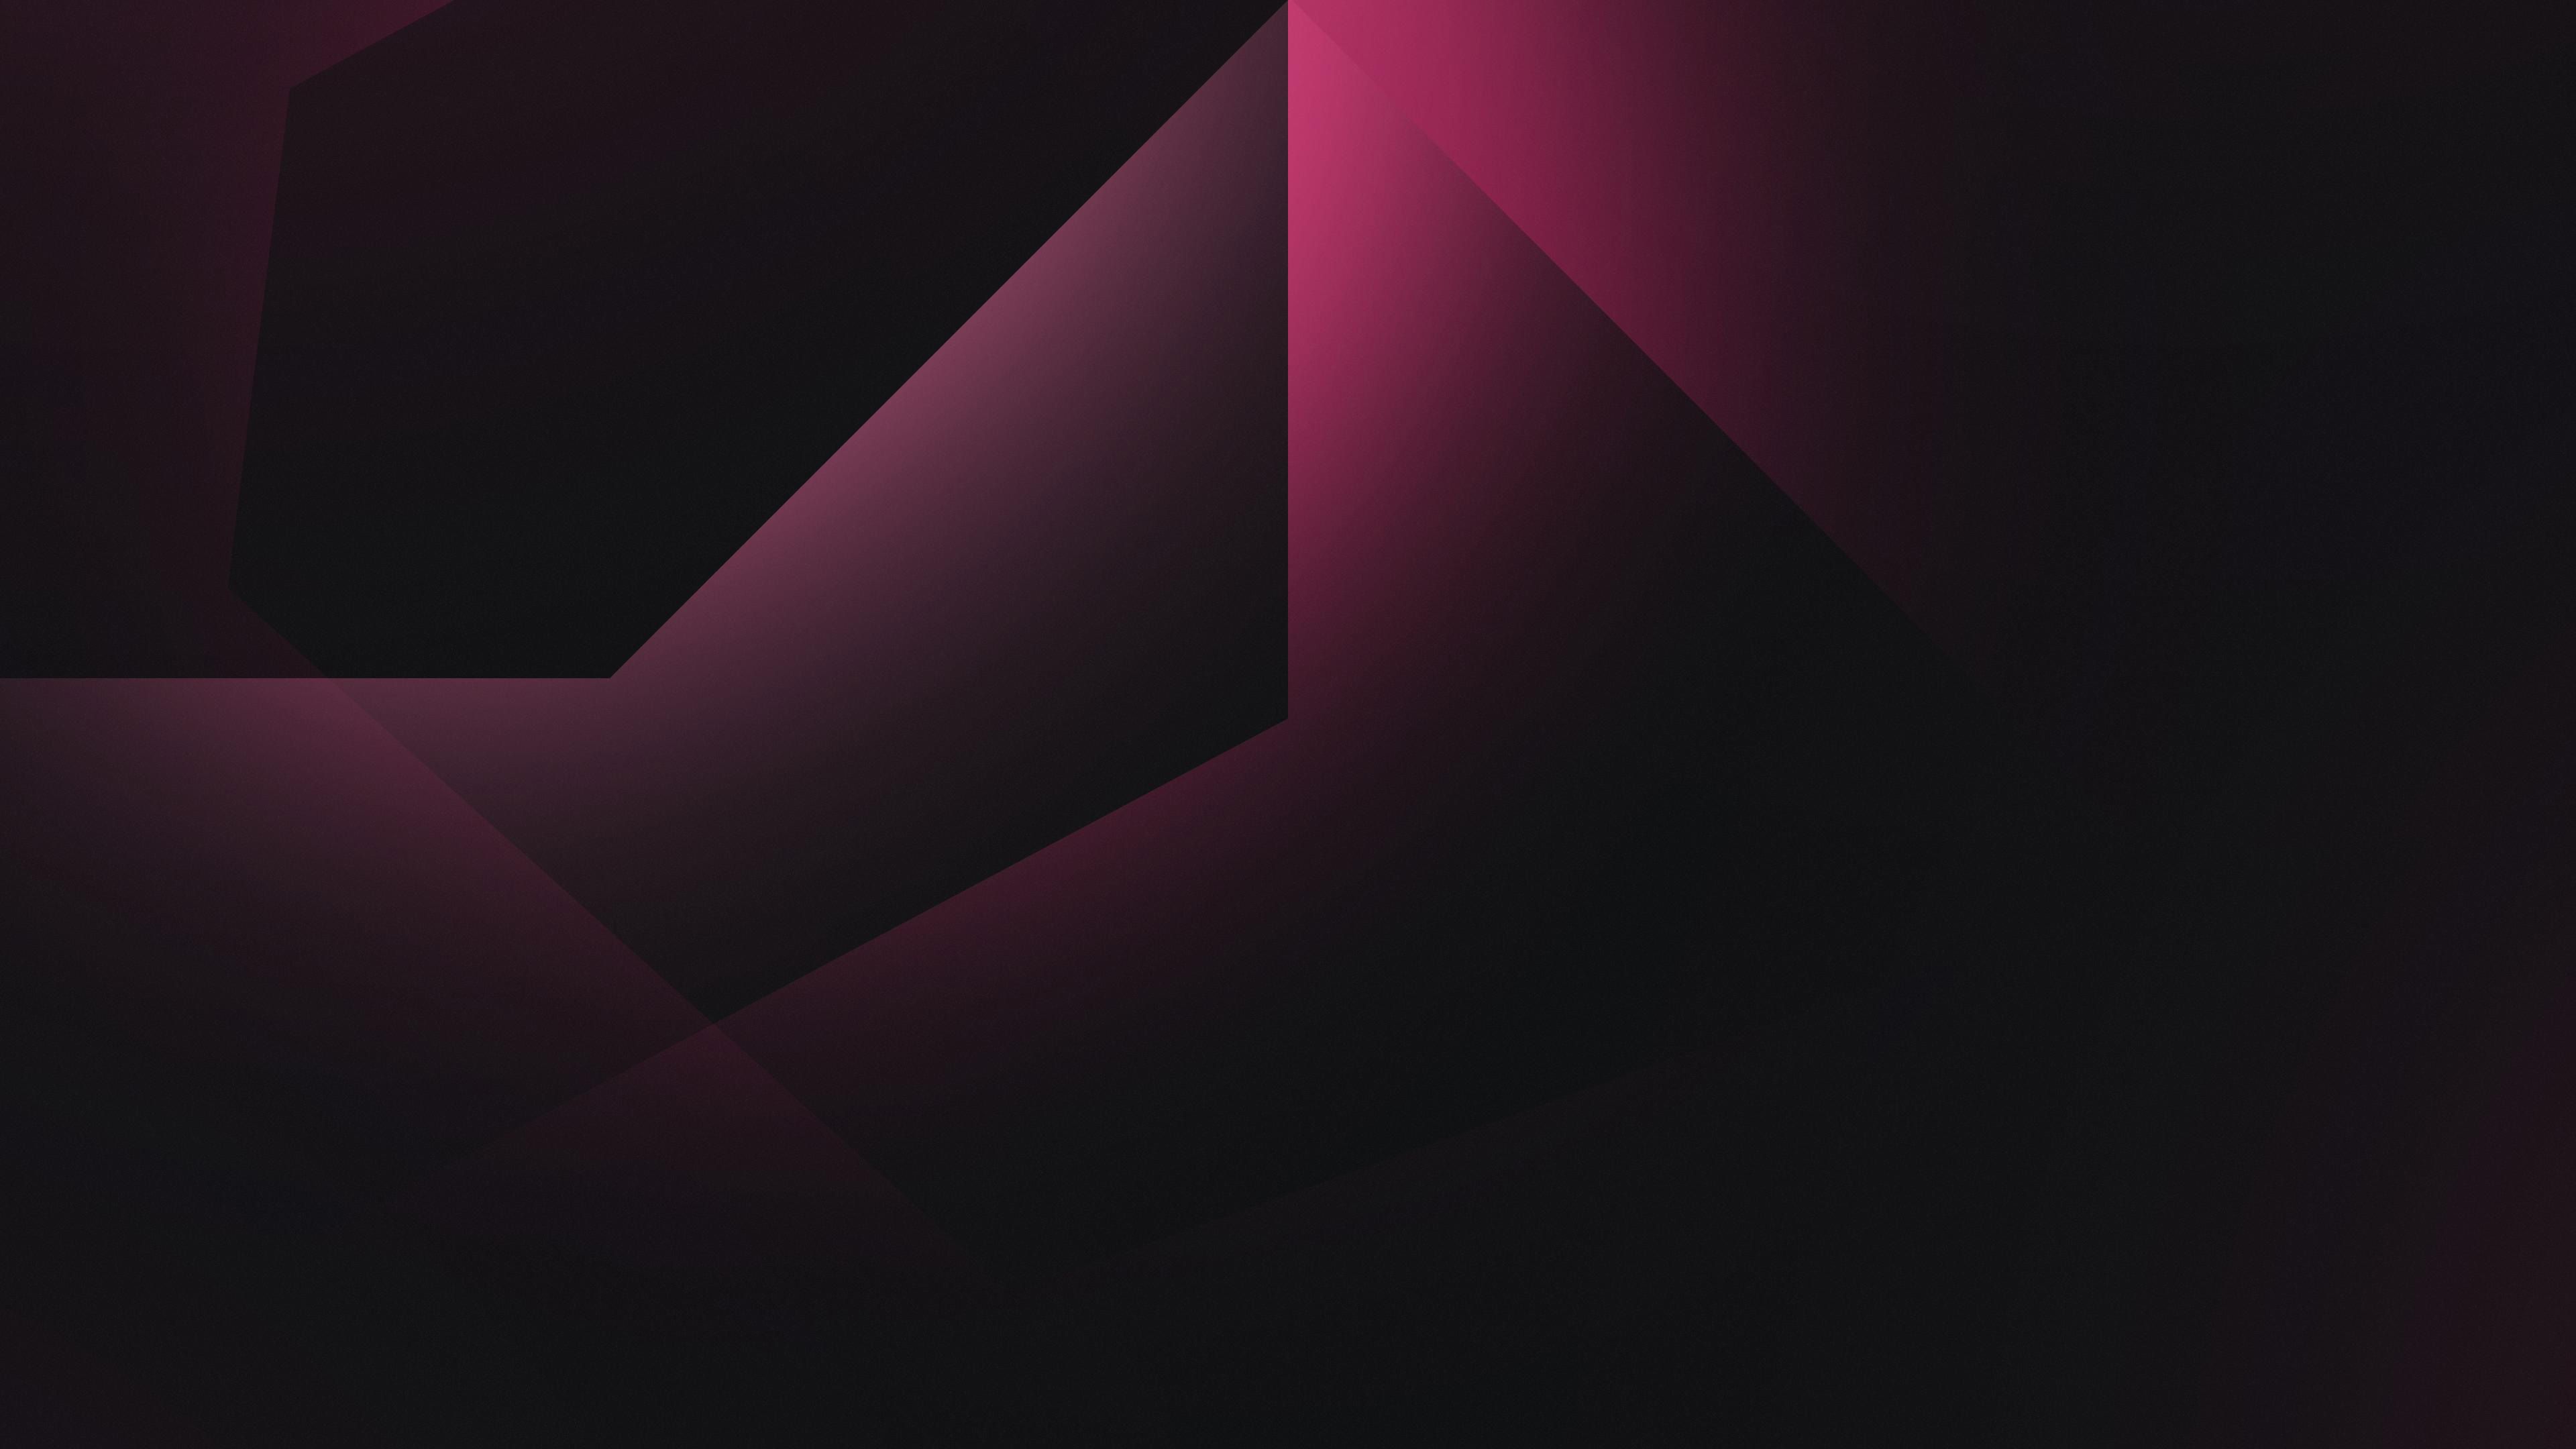 4k Dark Abstract: Abstract Dark Red 4k, HD Abstract, 4k Wallpapers, Images